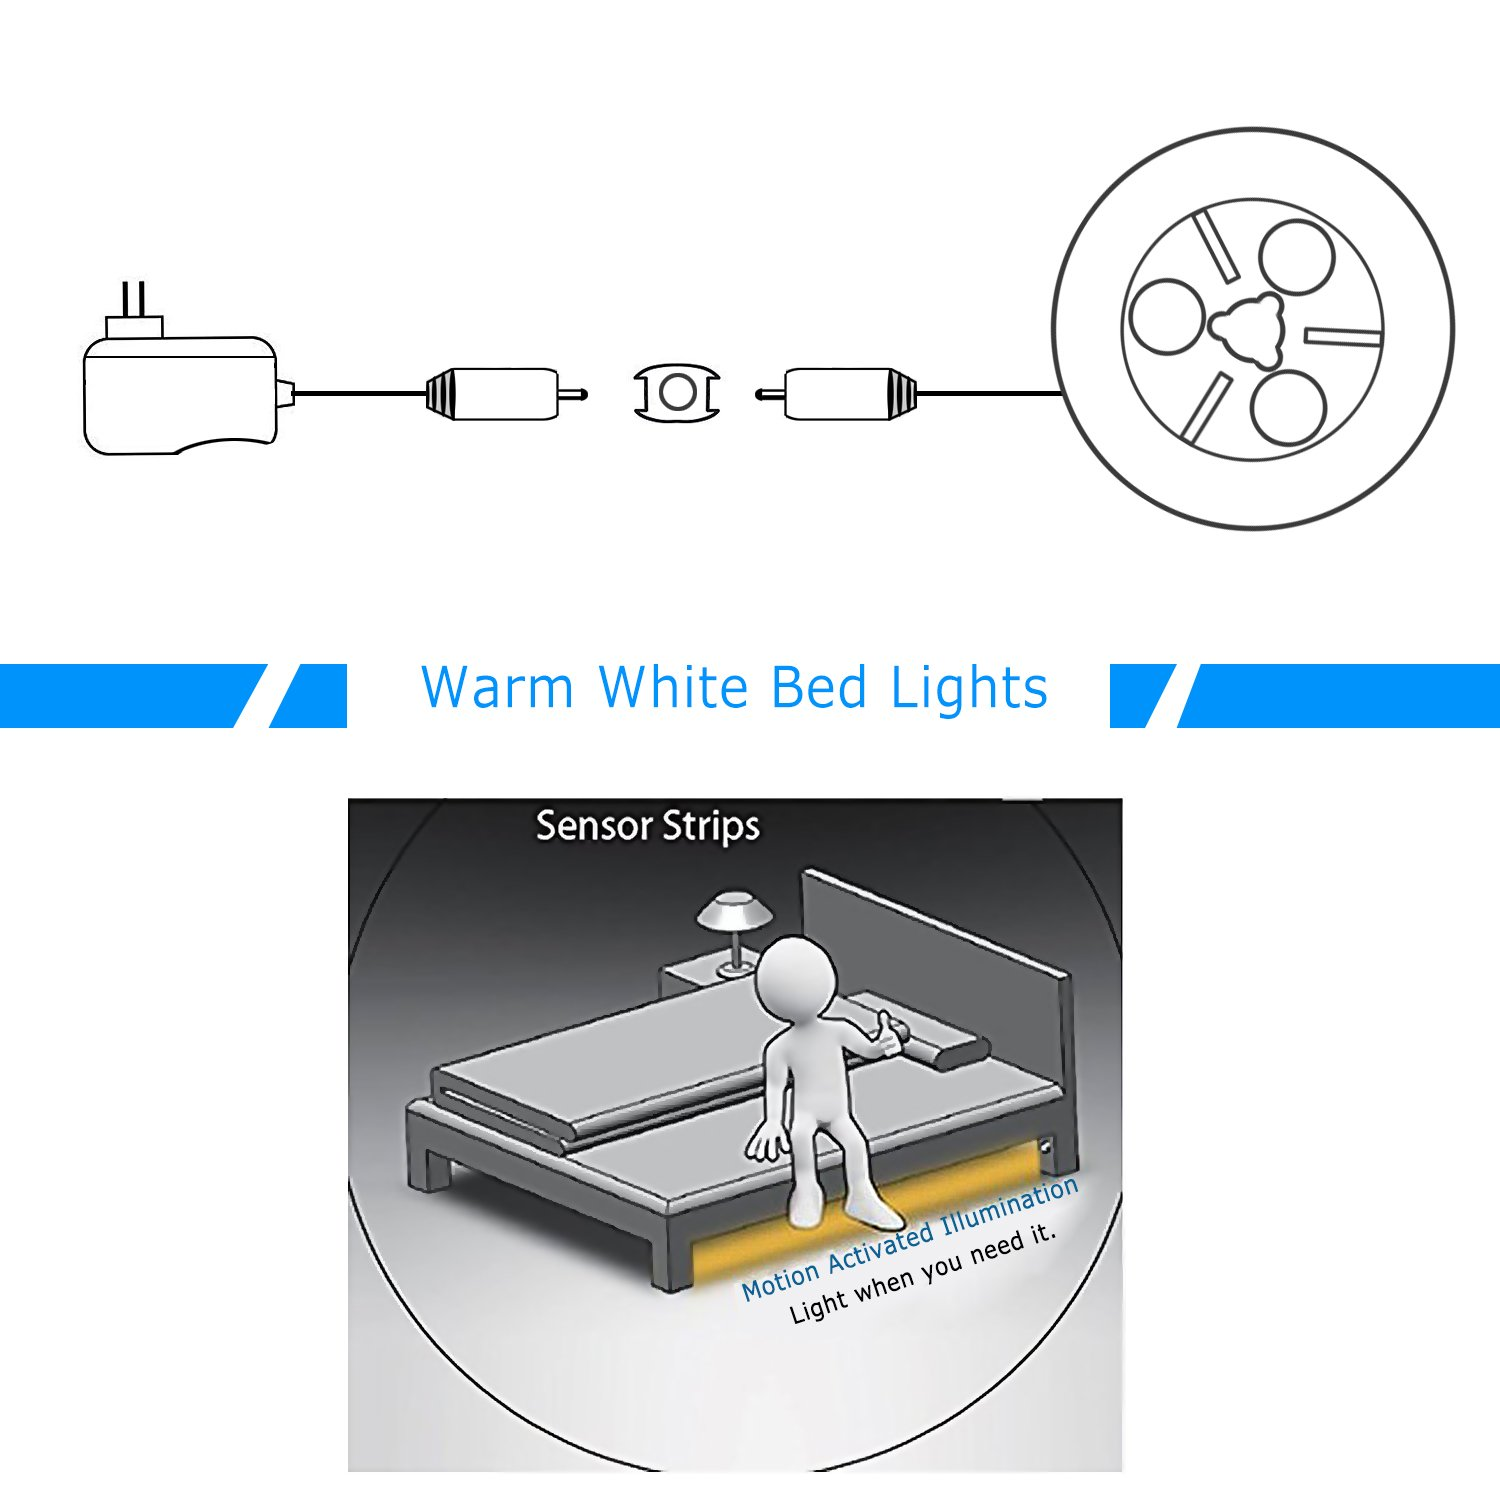 Vansky Motion Activated Bed Light Flexible Led Strip Below Diagram Shows How To Wire Dimmer The Lights Sensor Night Bedside Lamp Illumination With Automatic Shut Off Timer Warm